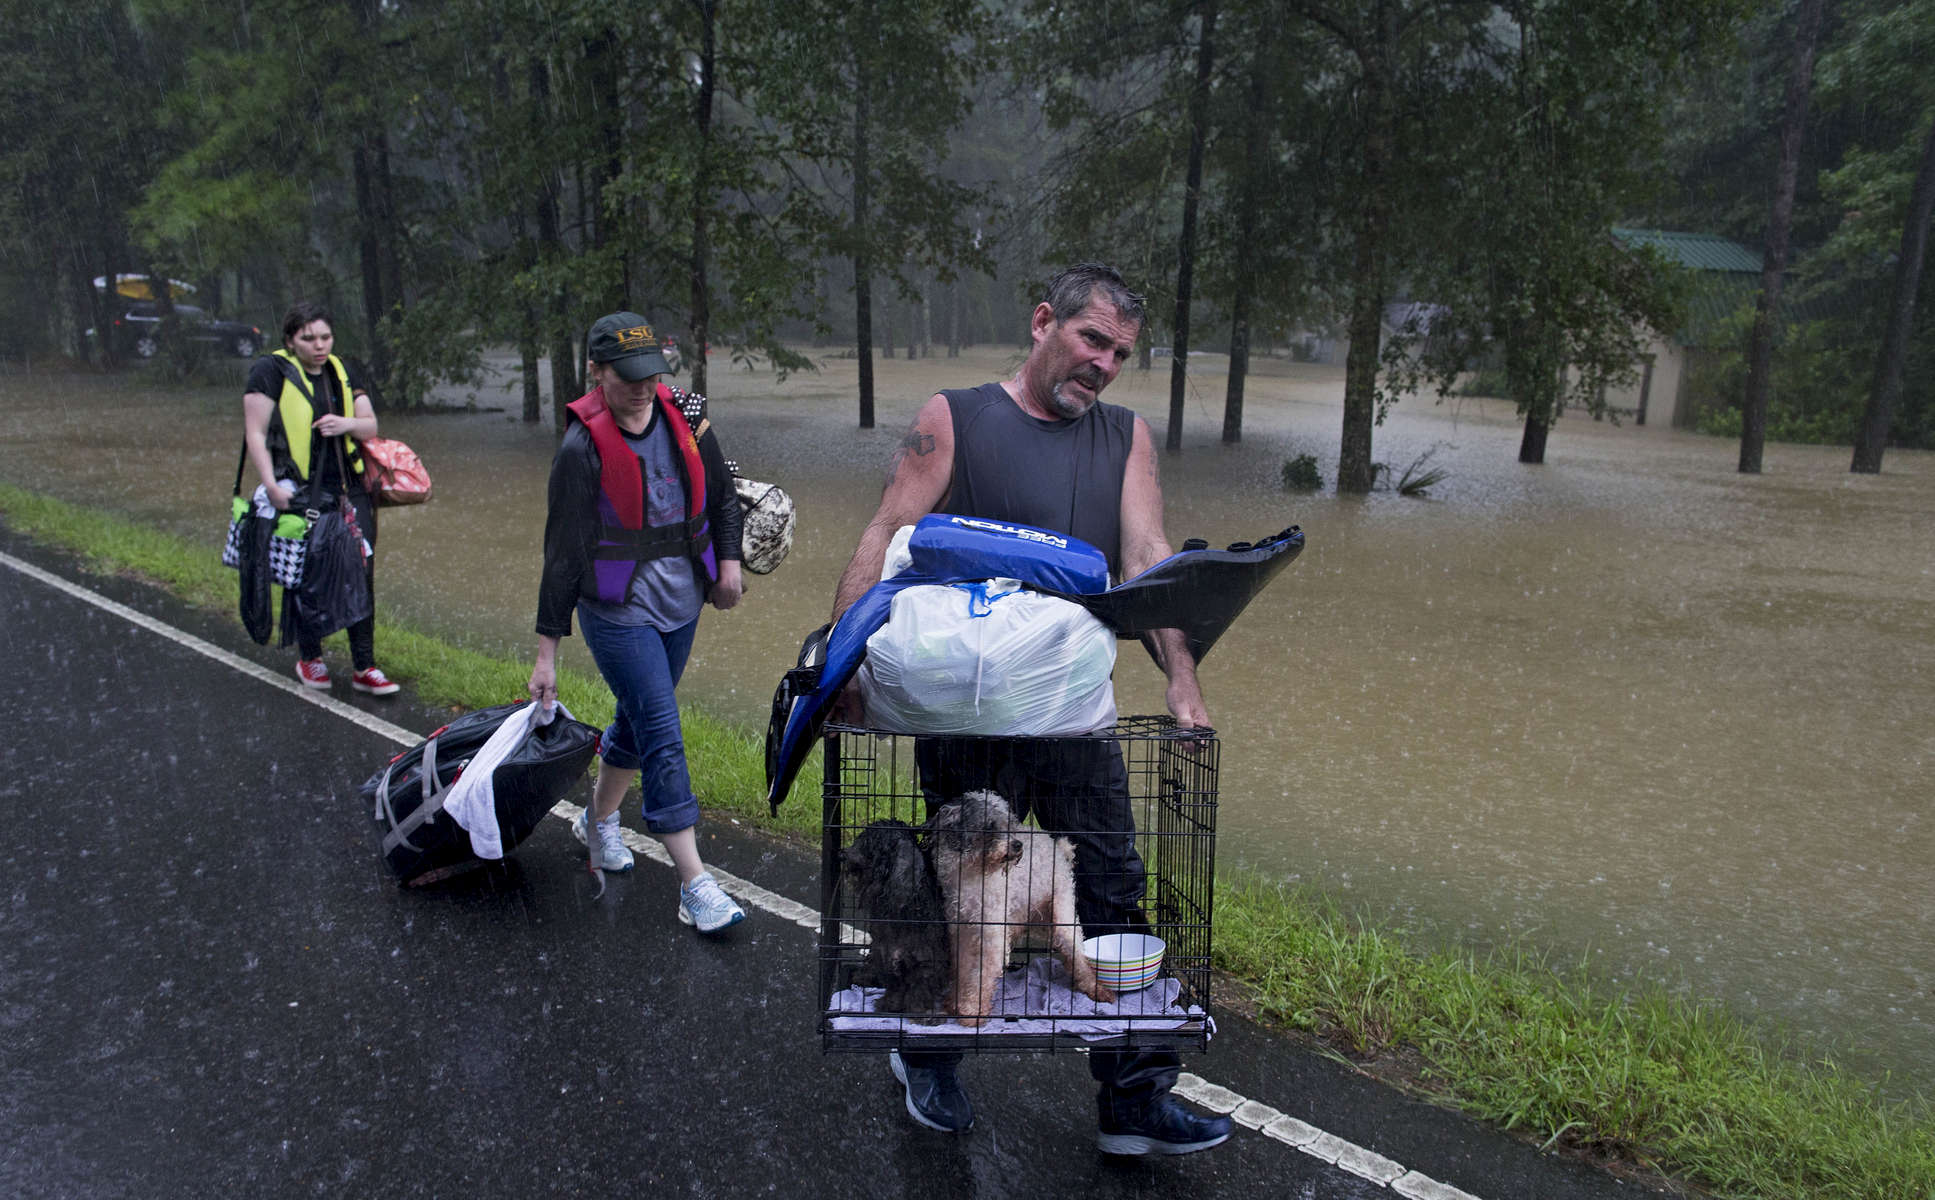 People arrive to be evacuated by members of the Louisiana Army National Guard near Walker, La. USA, in heavy rain, Sunday, Aug. 14, 2016. After Hurricane Katrina, Congress passed the Pets Evacuation and Transportation Standards Act compelling first responders to save pets just as they save people. Louisiana Gov. John Bel Edwards said the Louisiana National Guard rescued more than 1,000 people and hundreds of pets. (AP Photo/Max Becherer)